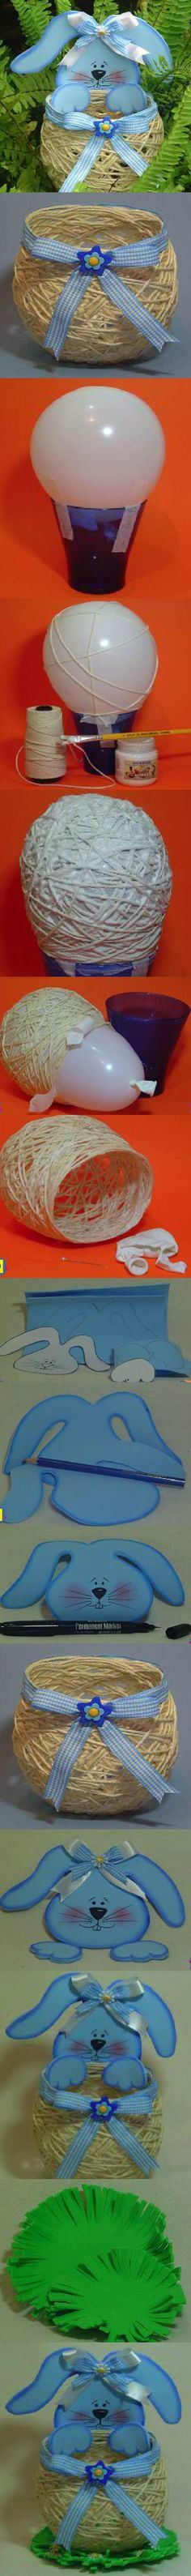 DIY Yarn String Easter Basket | iCreativeIdeas.com